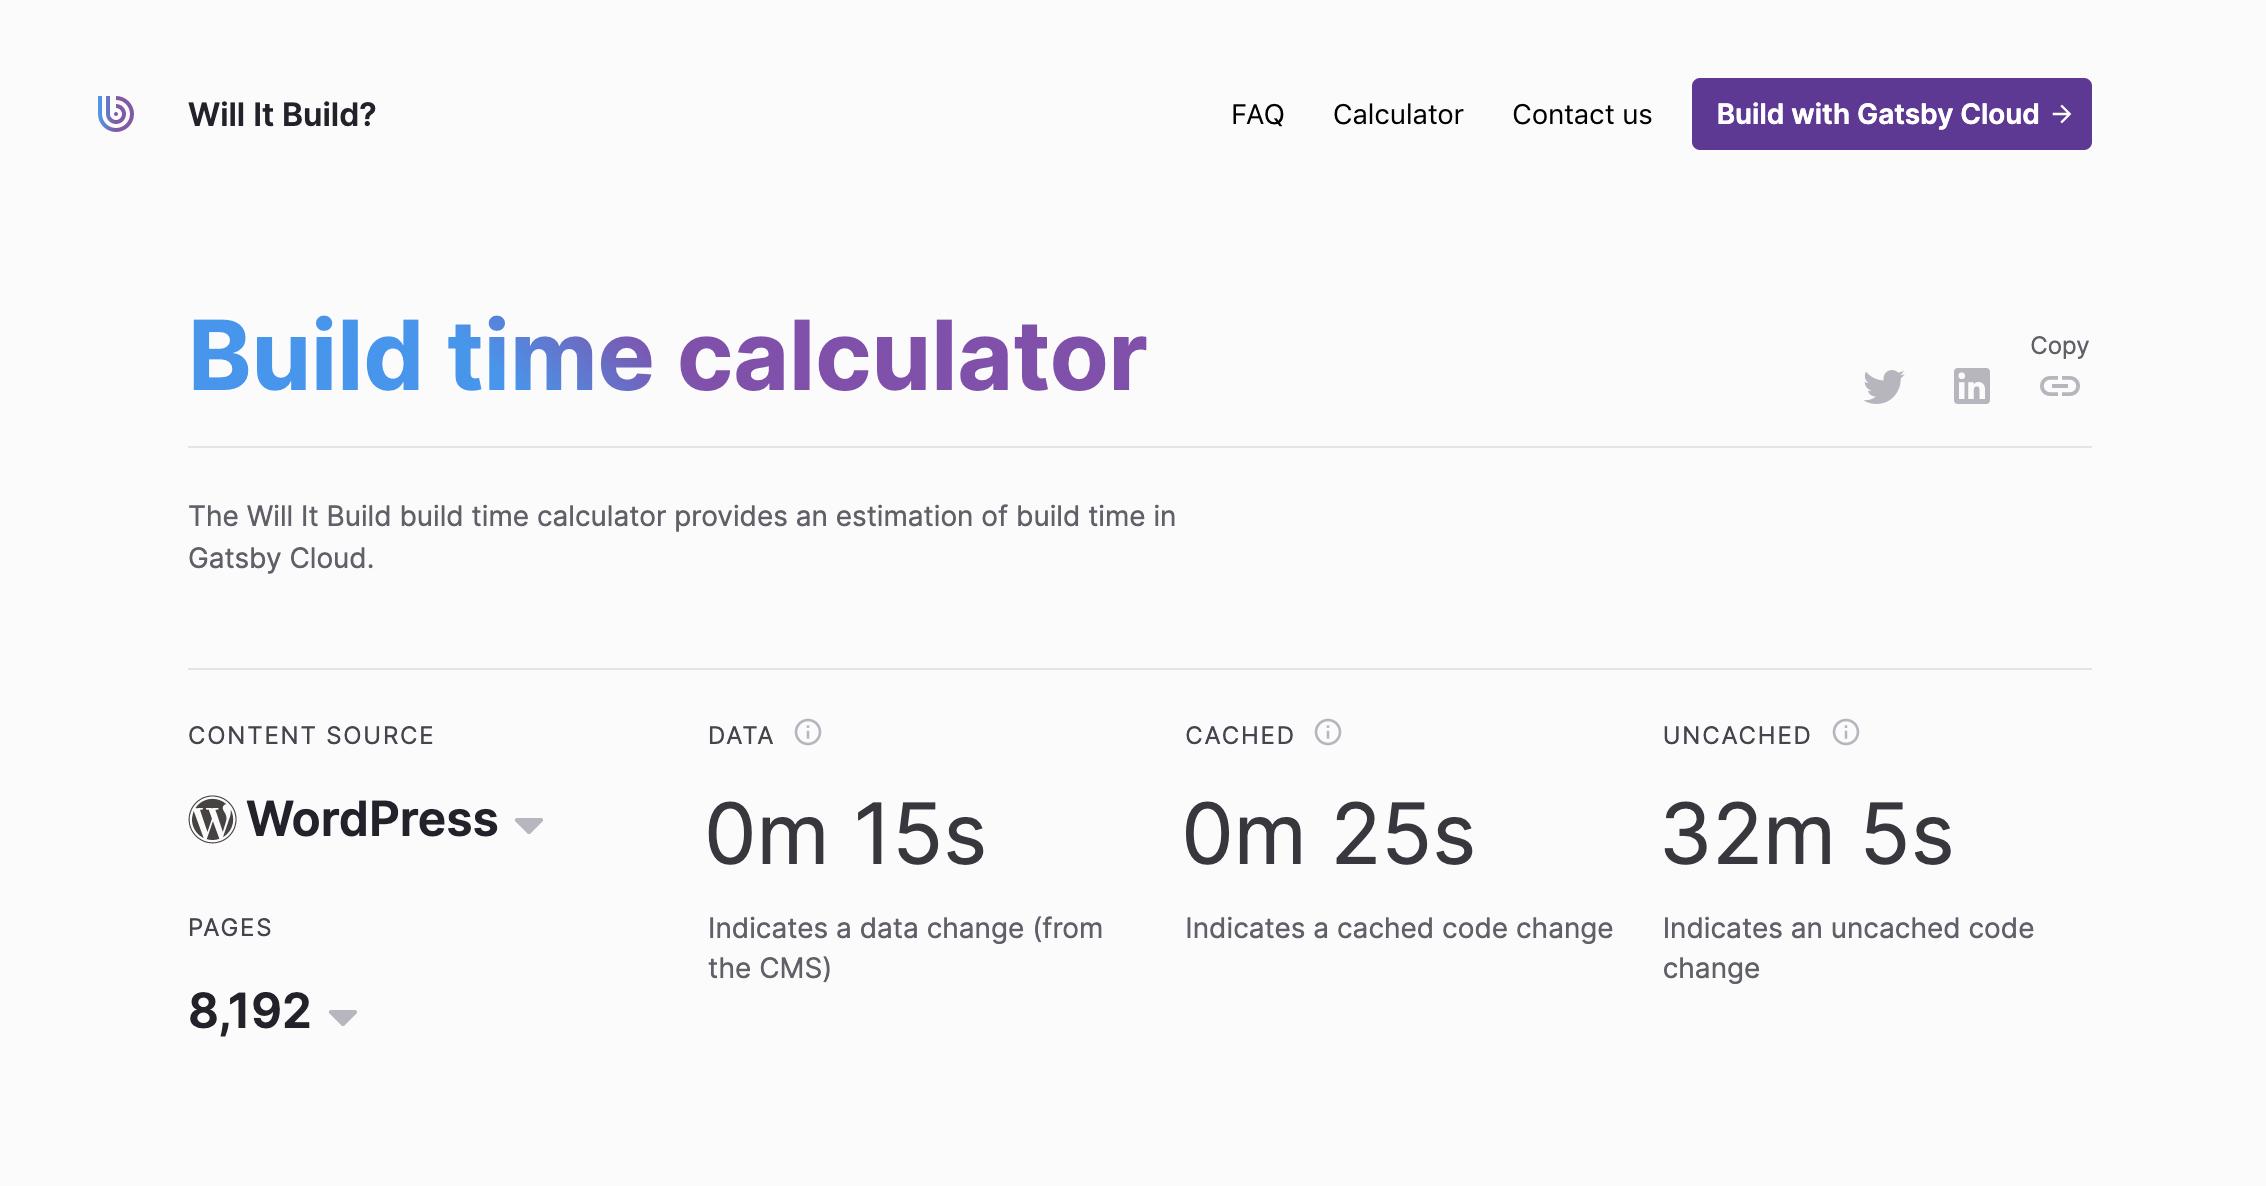 A screenshot showing the Will it Build calculator, showing that a Wordpress site with 8000 pages can rebuild in 15 seconds.